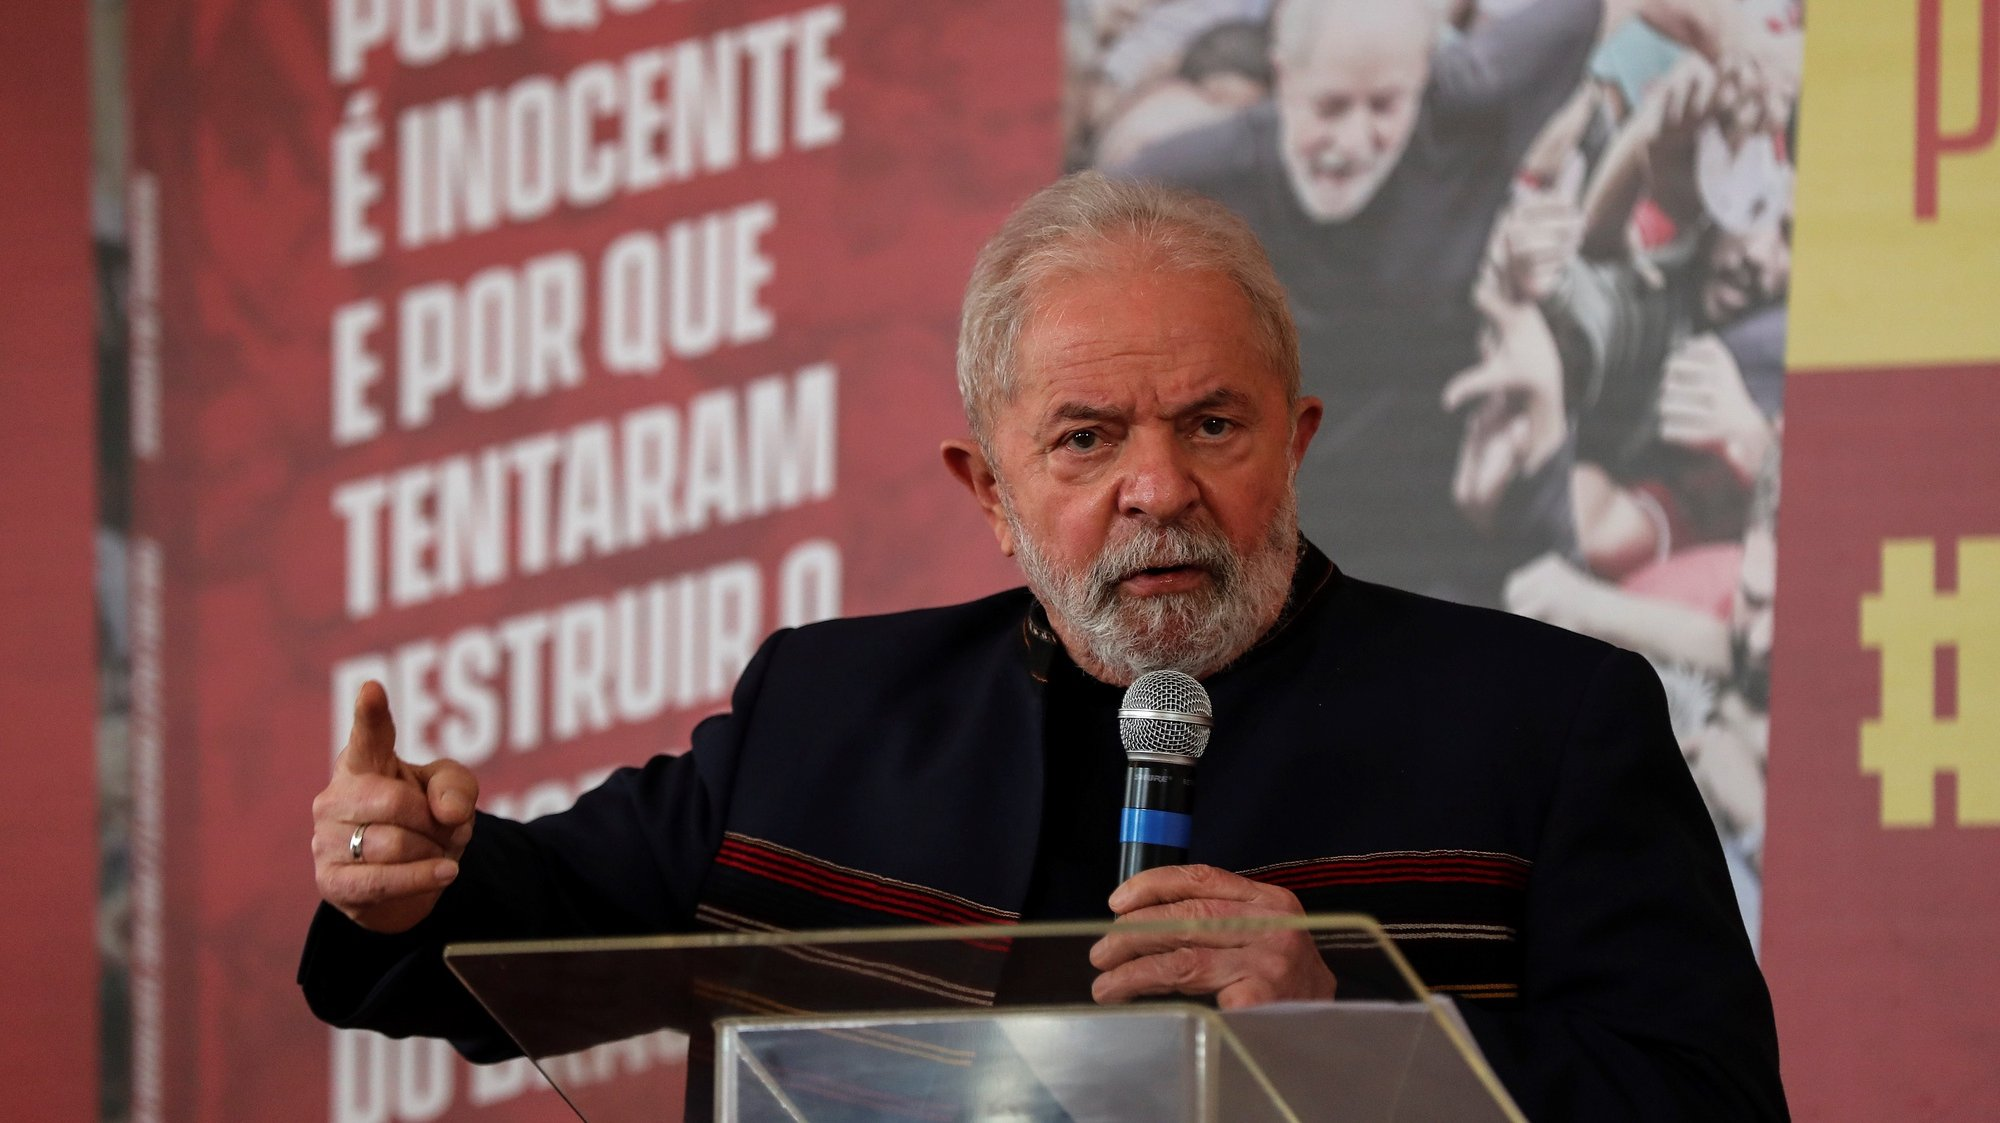 epa09411302 Former Brazilian President Luiz Inacio Lula da Silva speaks during the presentation of a book on his judicial process, in Sao Paulo, Brazil, 12 August 2021. In the book, titled 'Memorial of the Truth' Lula details first-hand the trials he faced during the case known as Operation Lava Jato.  EPA/Sebastiao Moreira